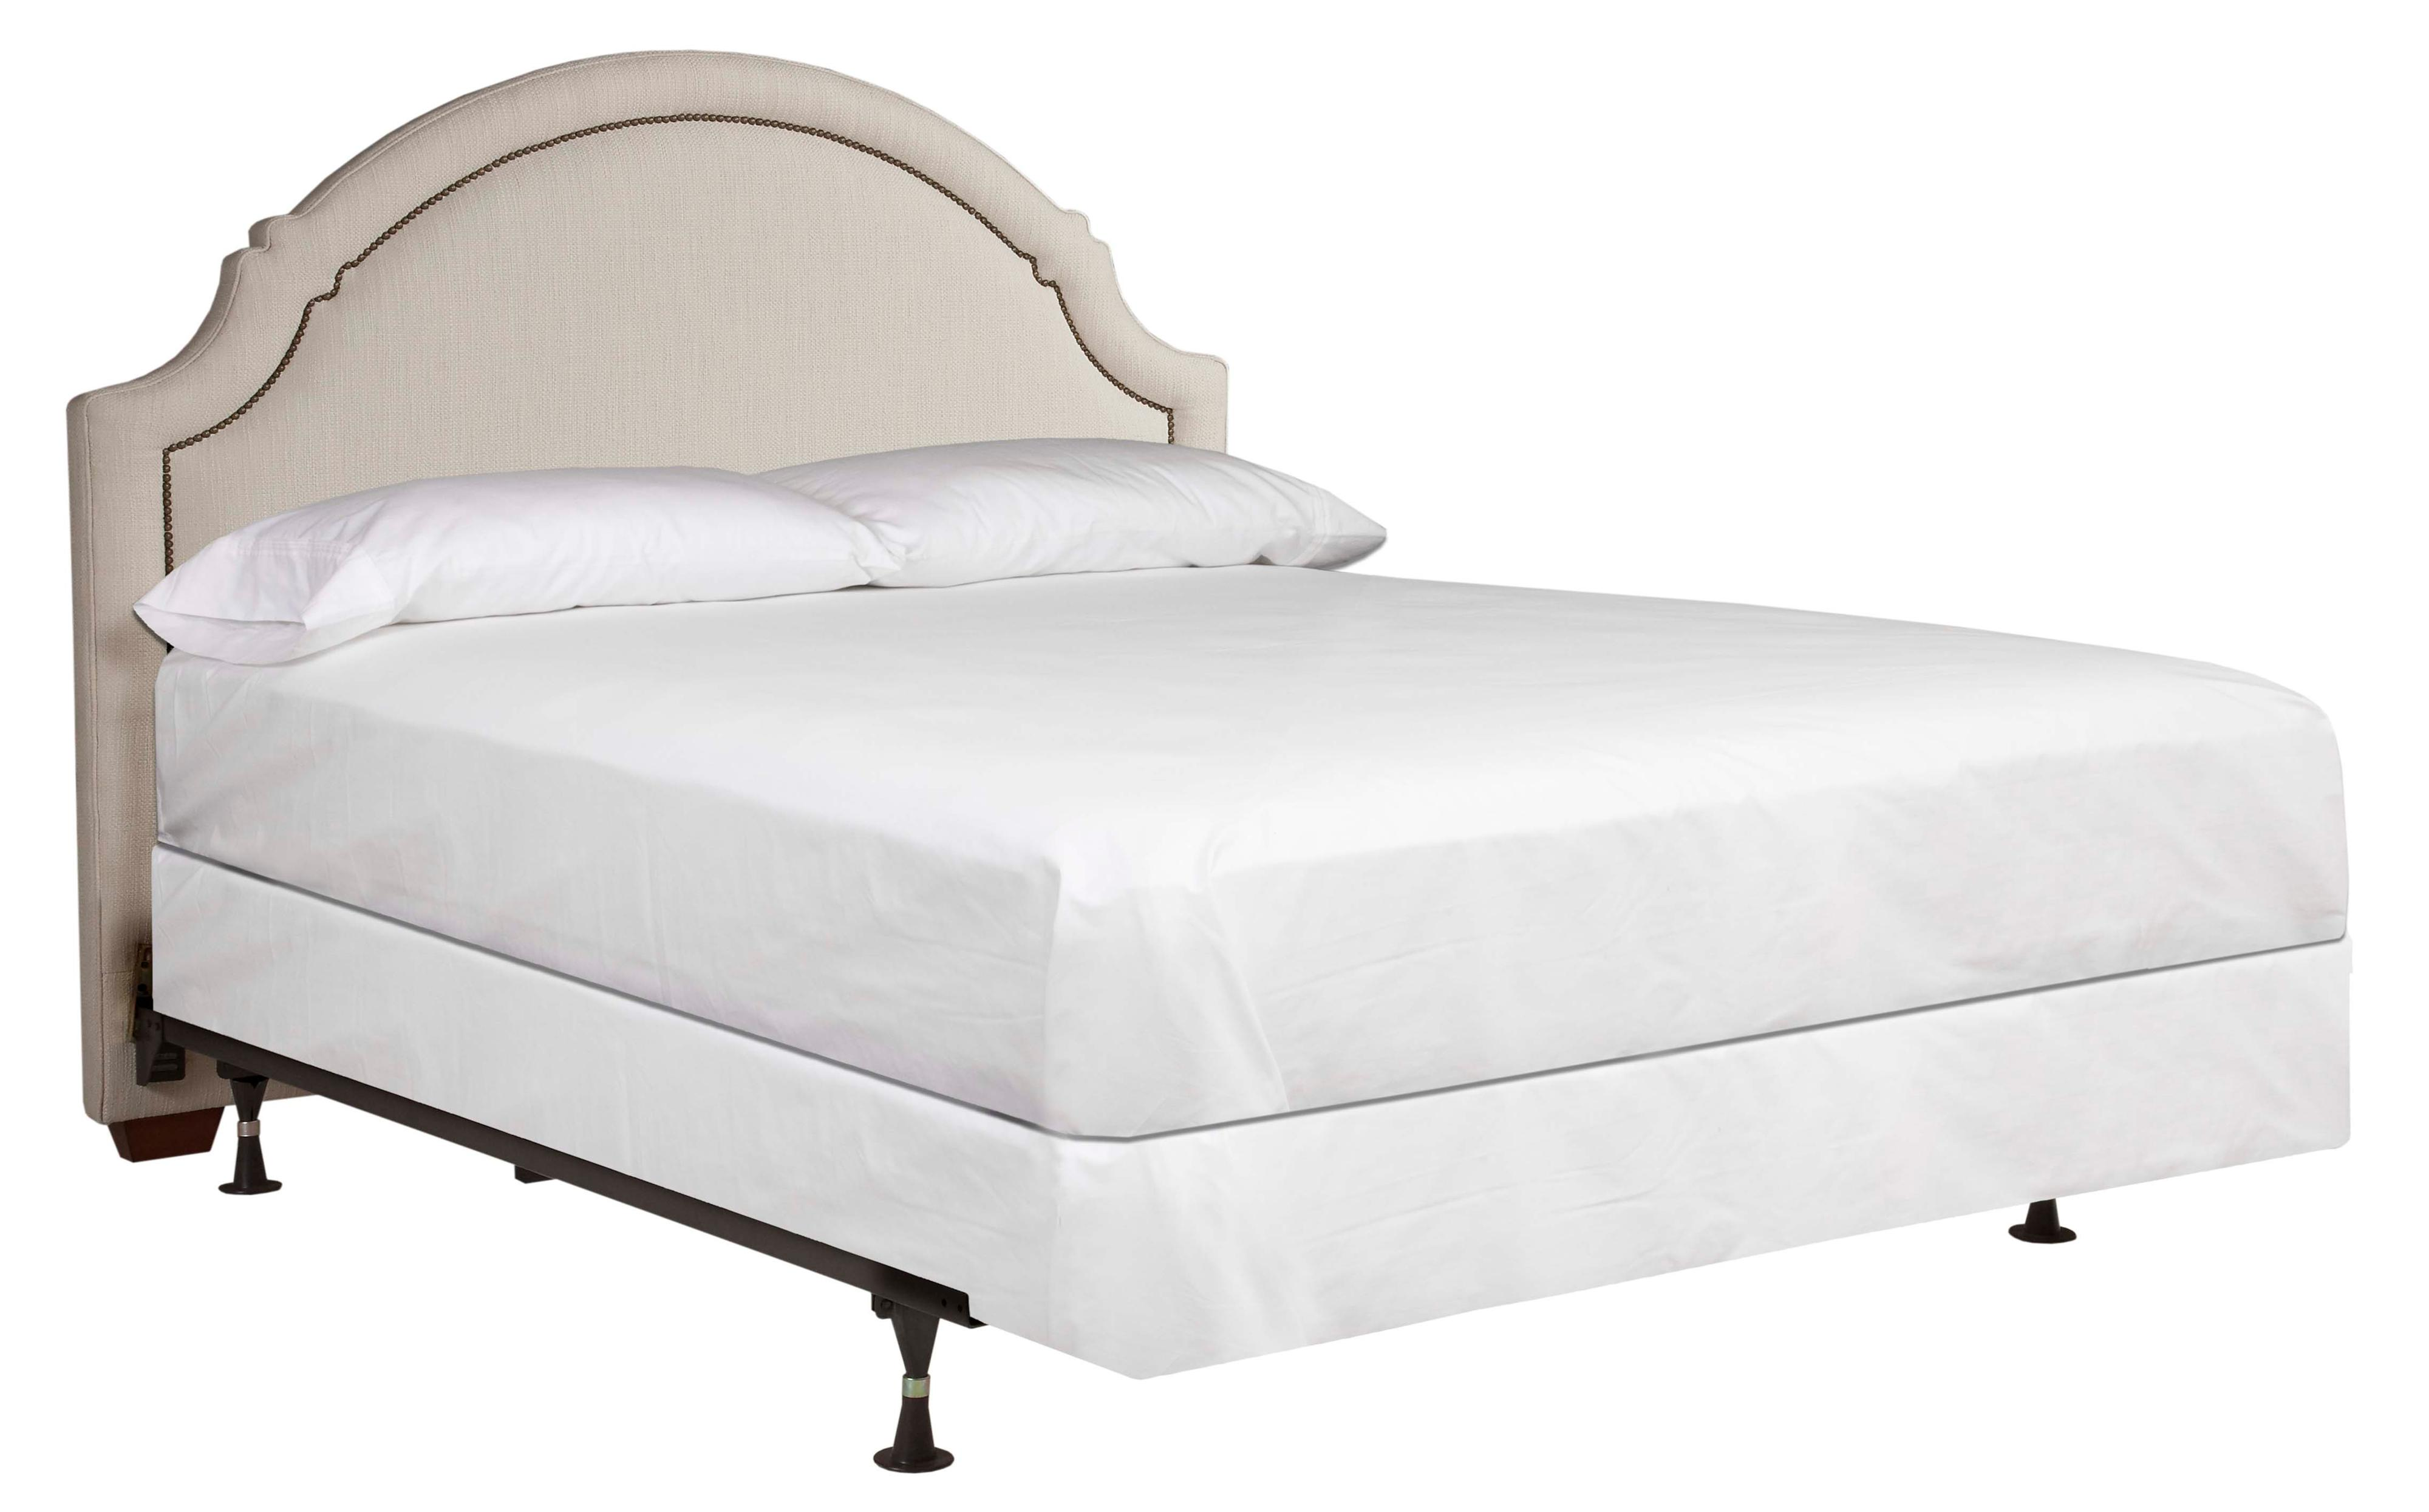 Upholstered Beds Ashbury King Headboard by Kincaid Furniture at Northeast Factory Direct